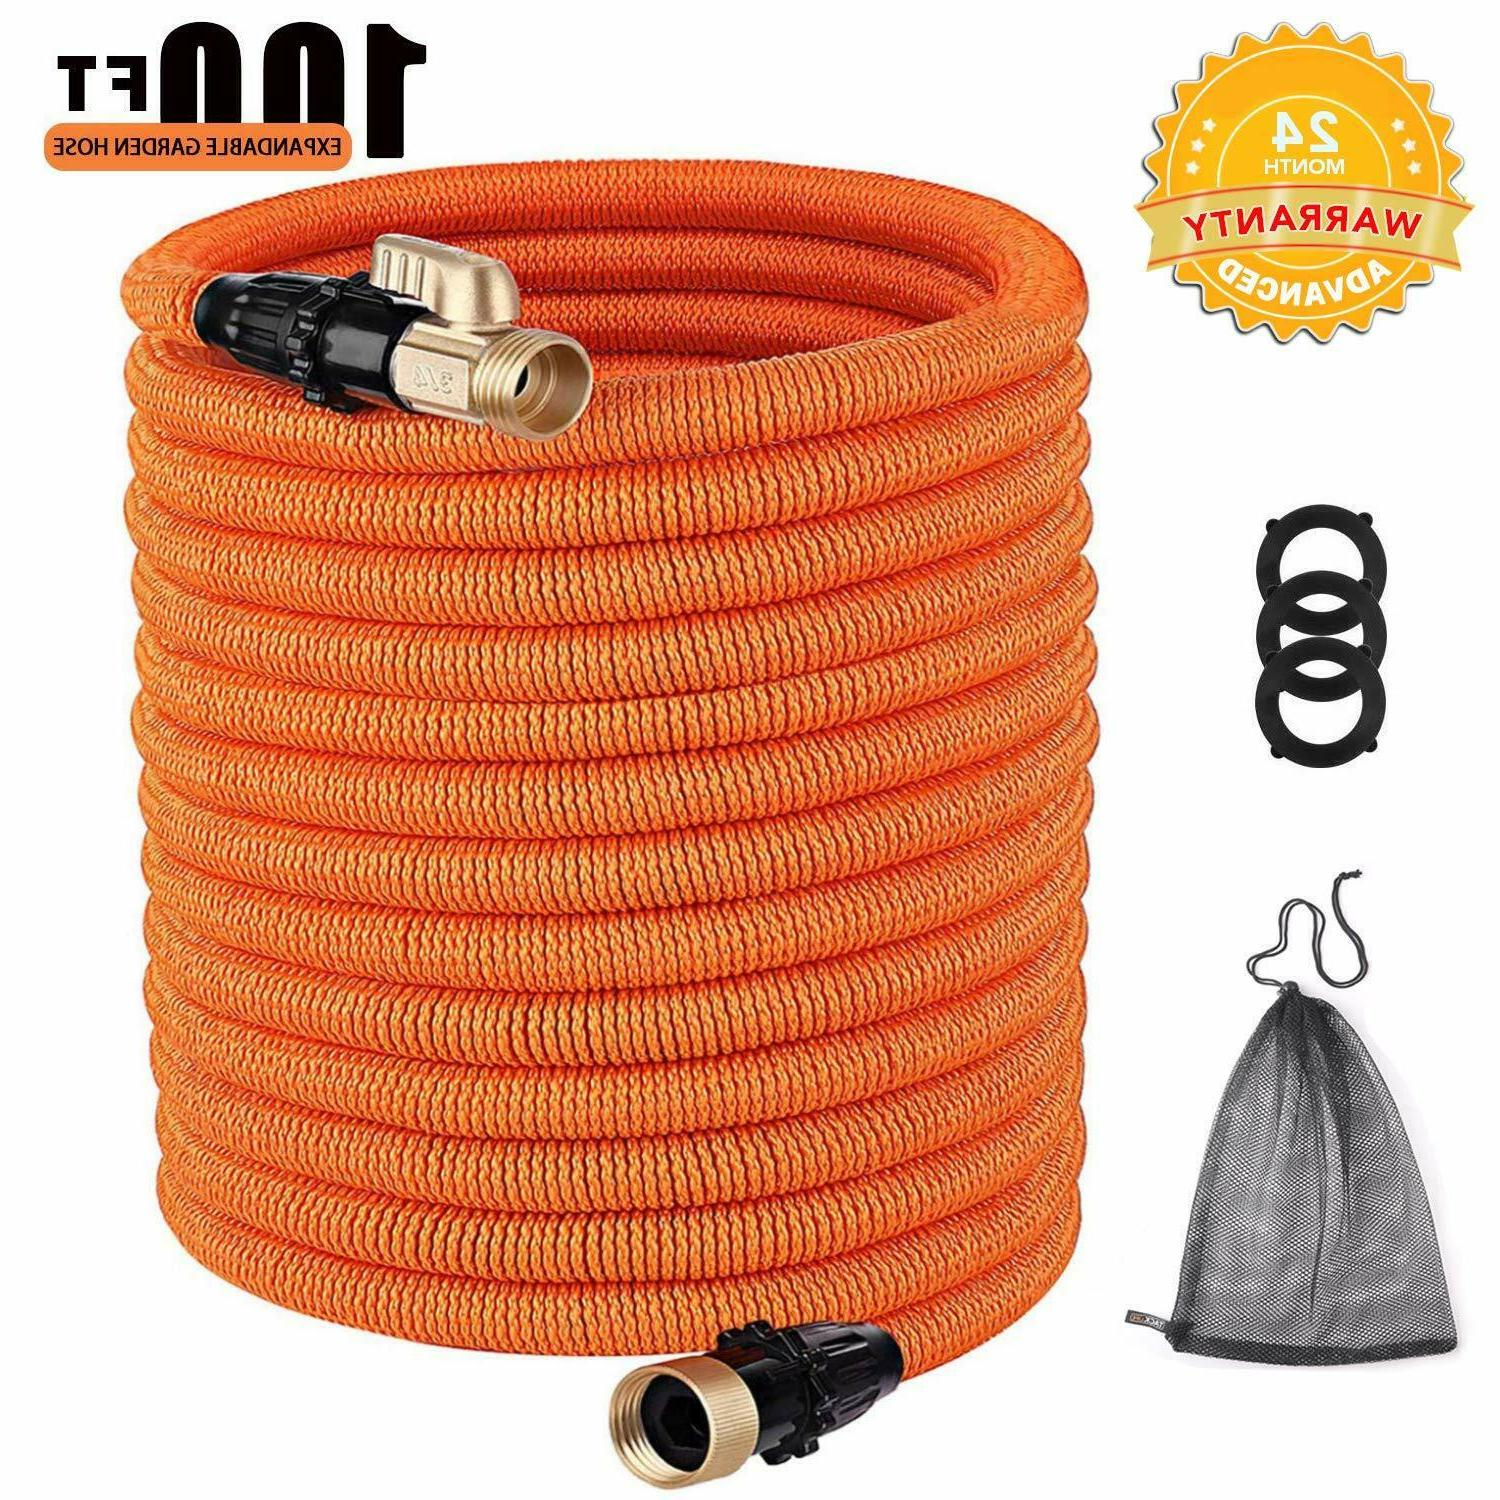 100ft expandable garden hose with double latex